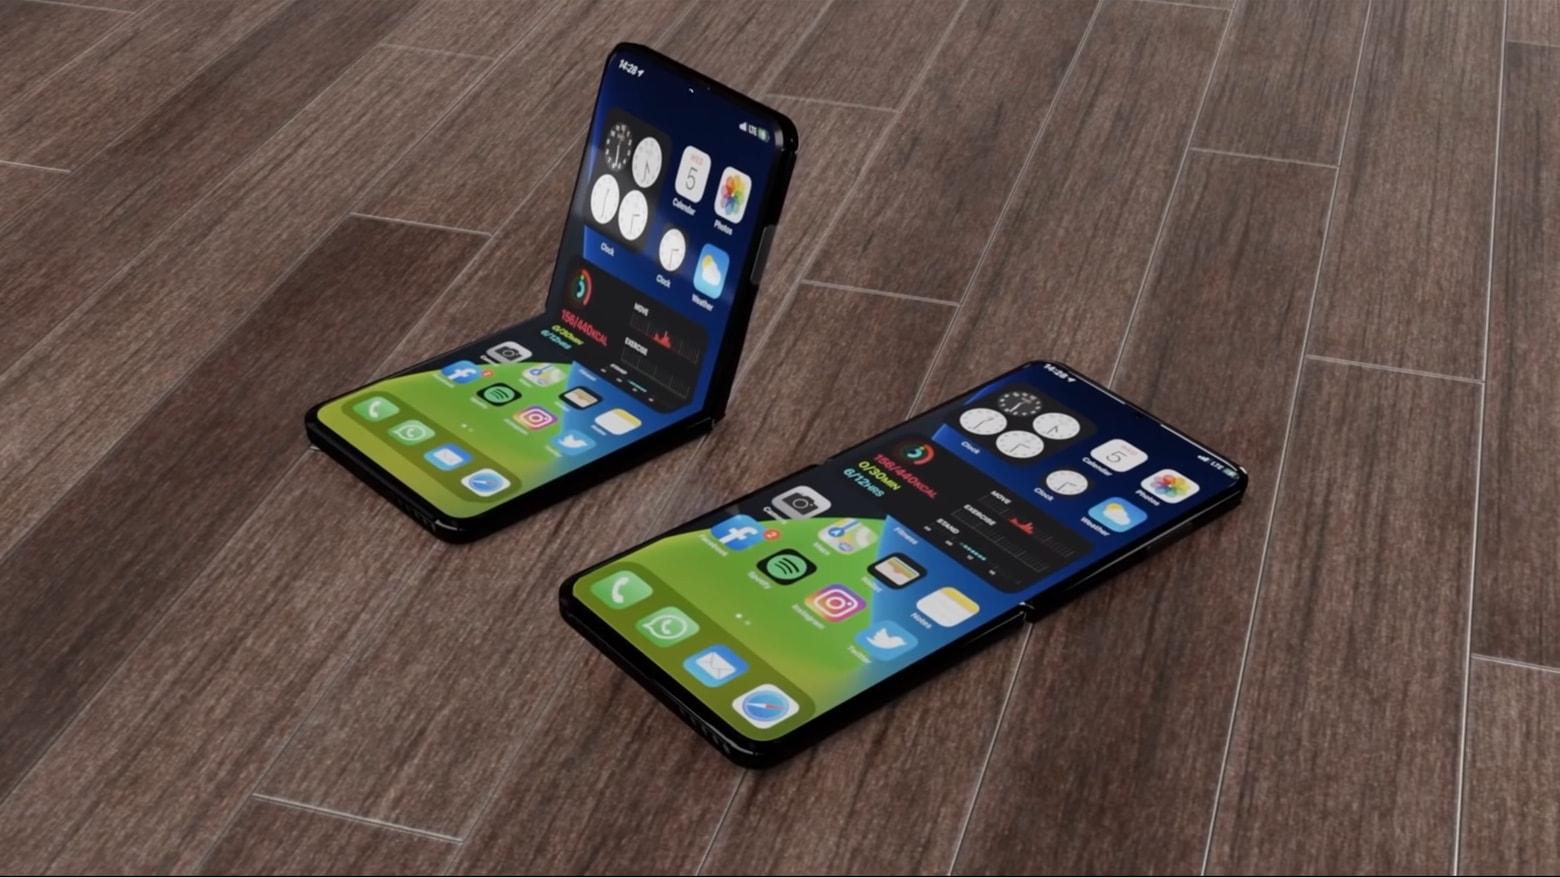 You'll flip for this iPhone 12 Flip concept - Cult of Mac